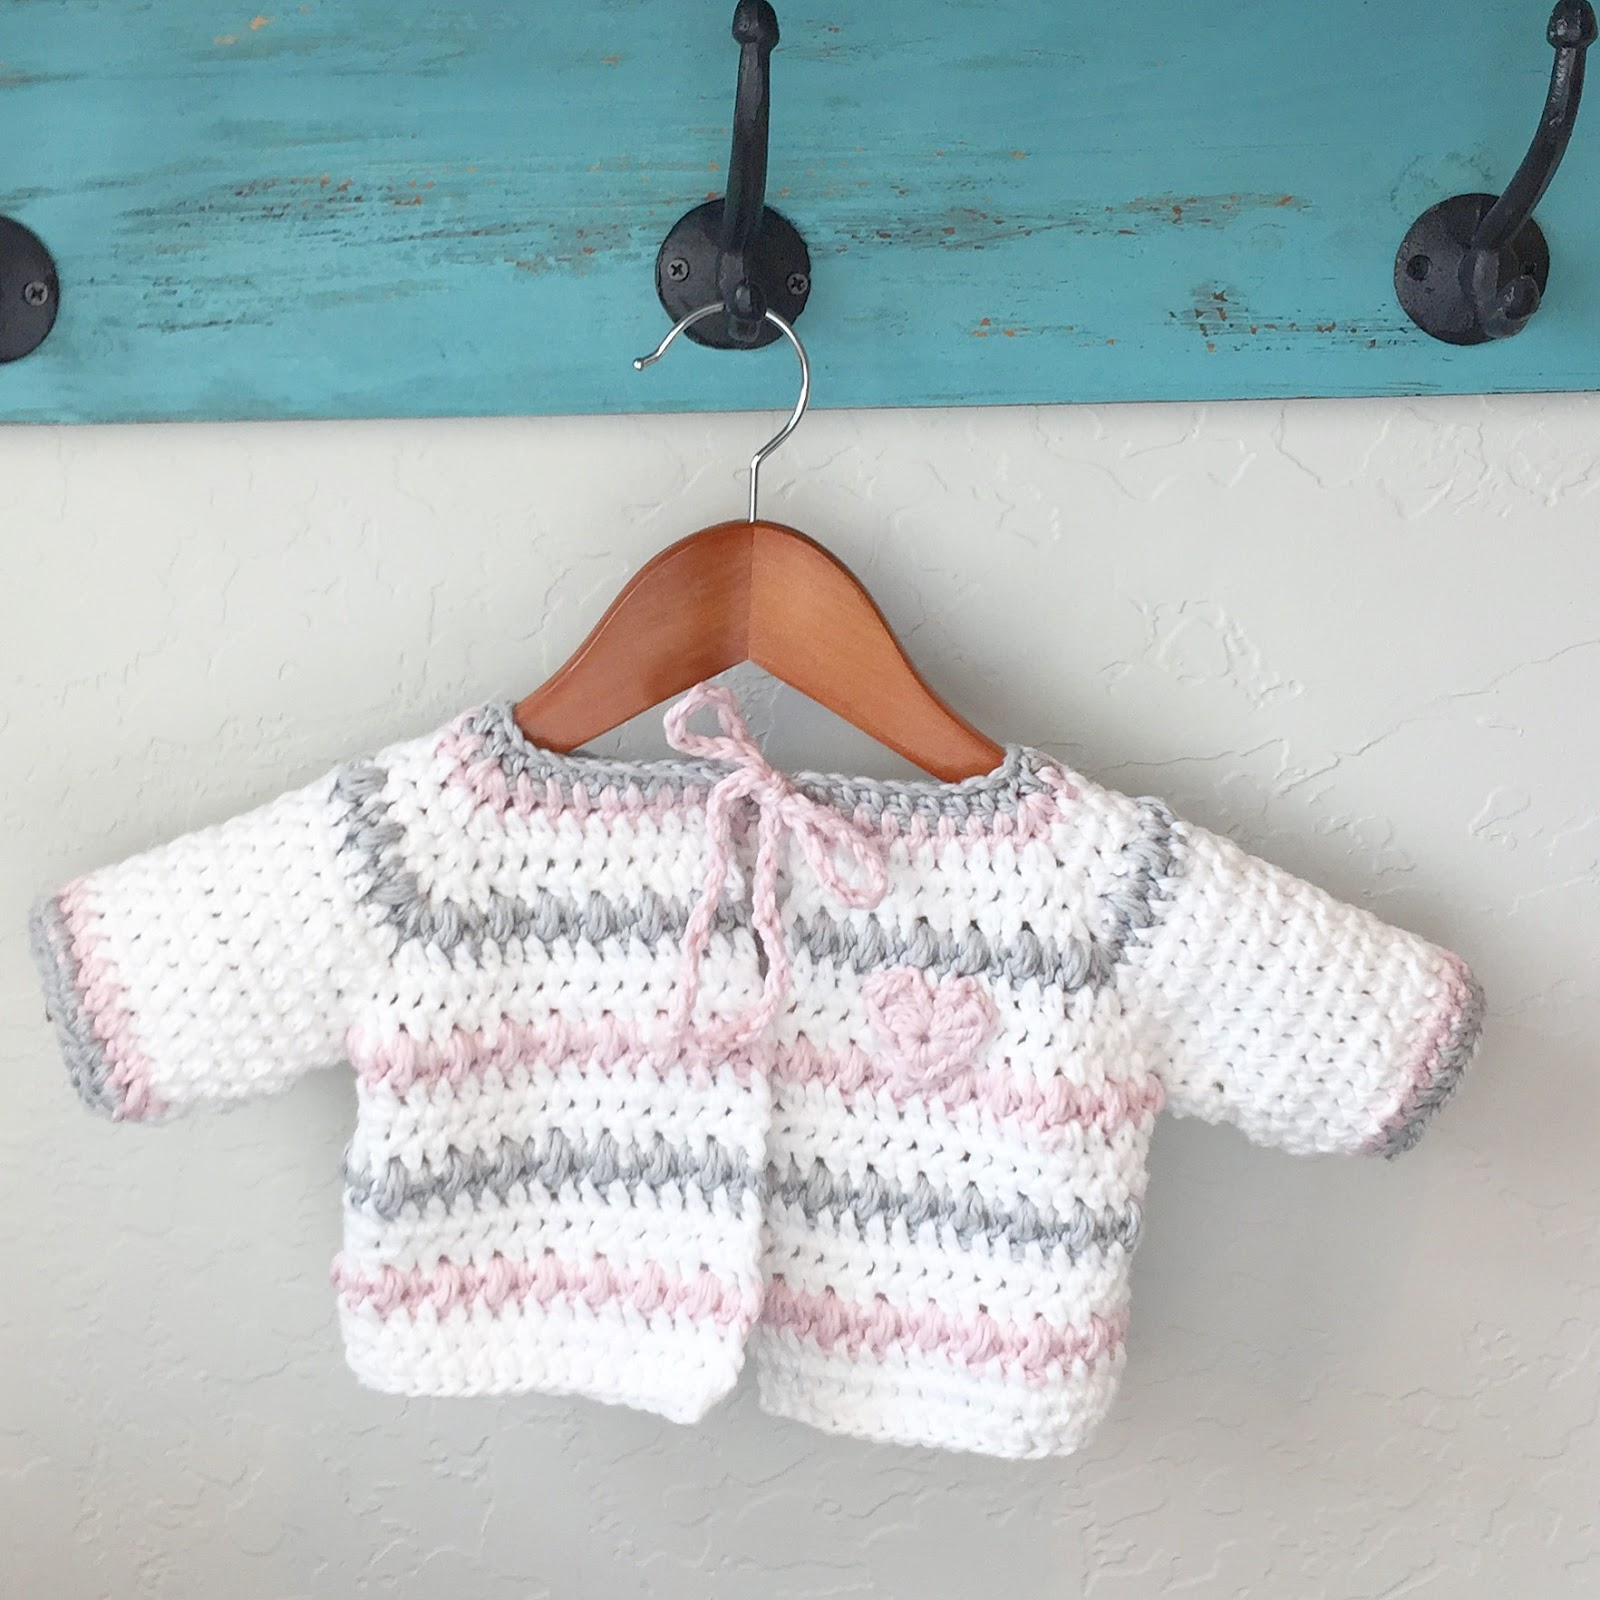 3bd460d14 Crochet Baby Sweater in White